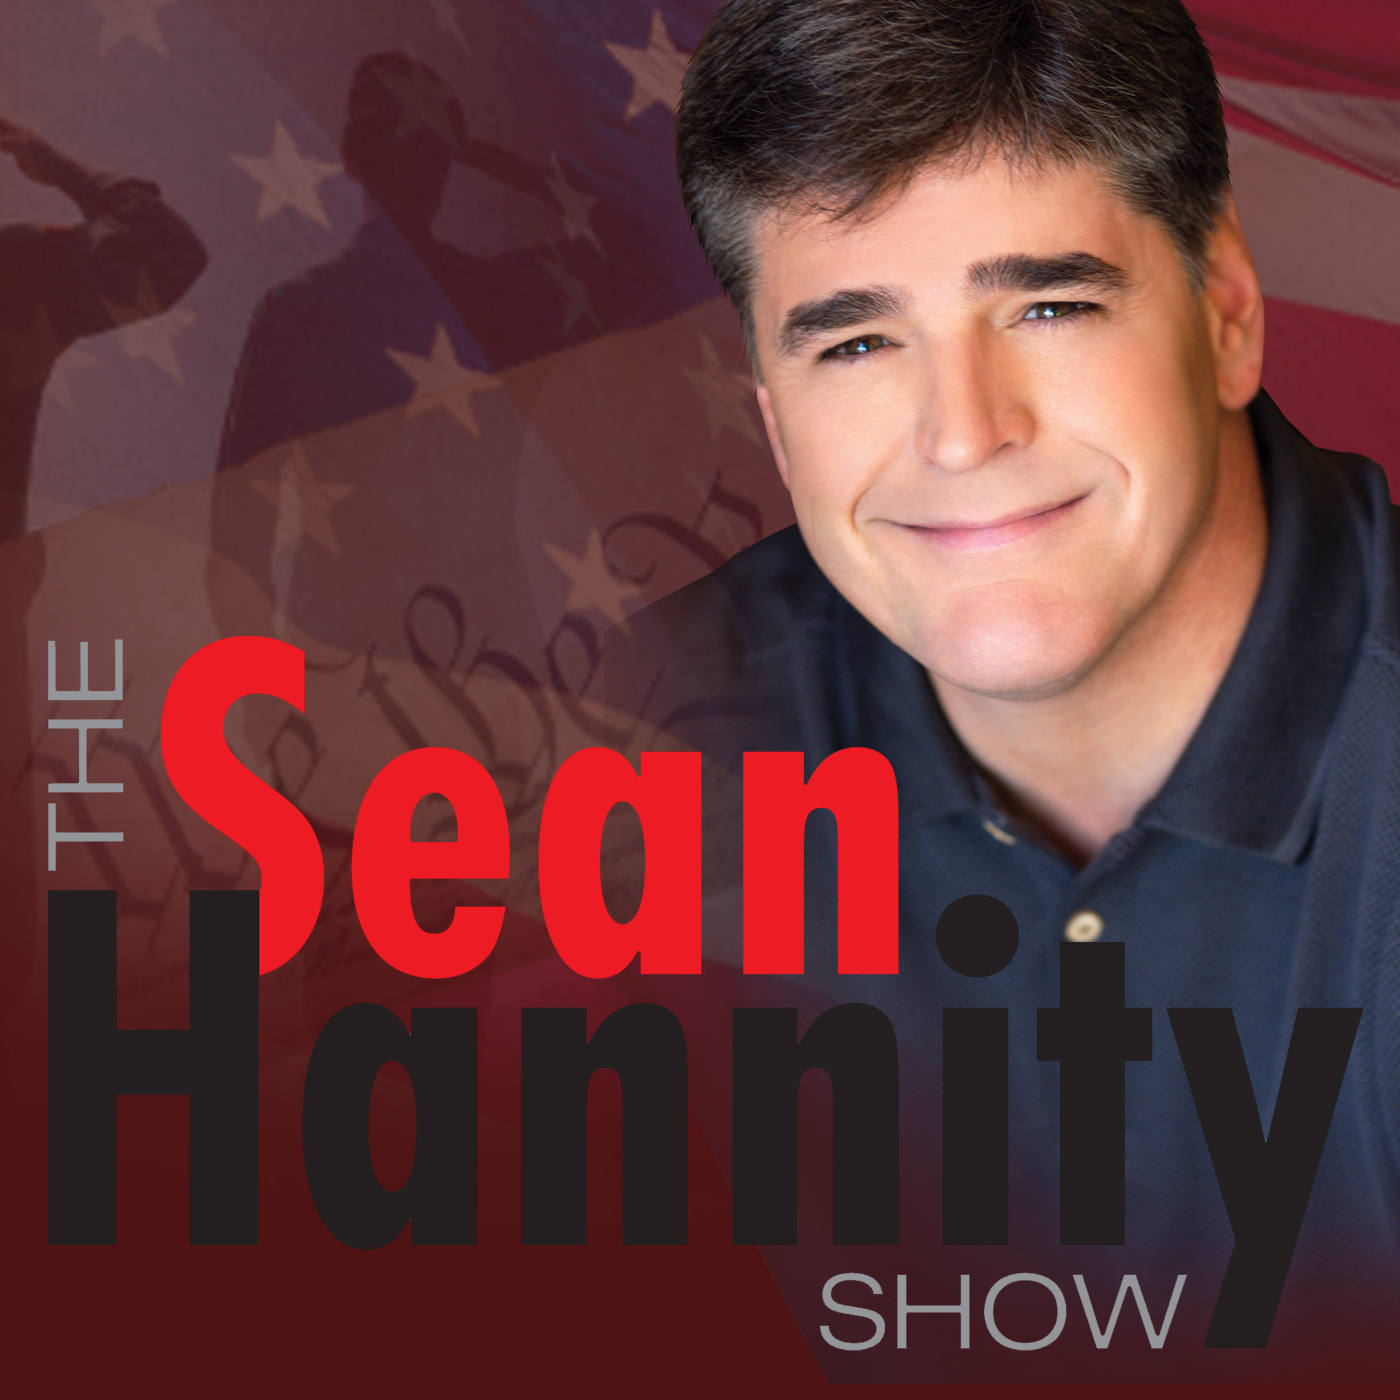 The Sean Hannity Show | Listen Online & Get Show Info | Podcasts | iHeartRadio - 24392822.1387483804